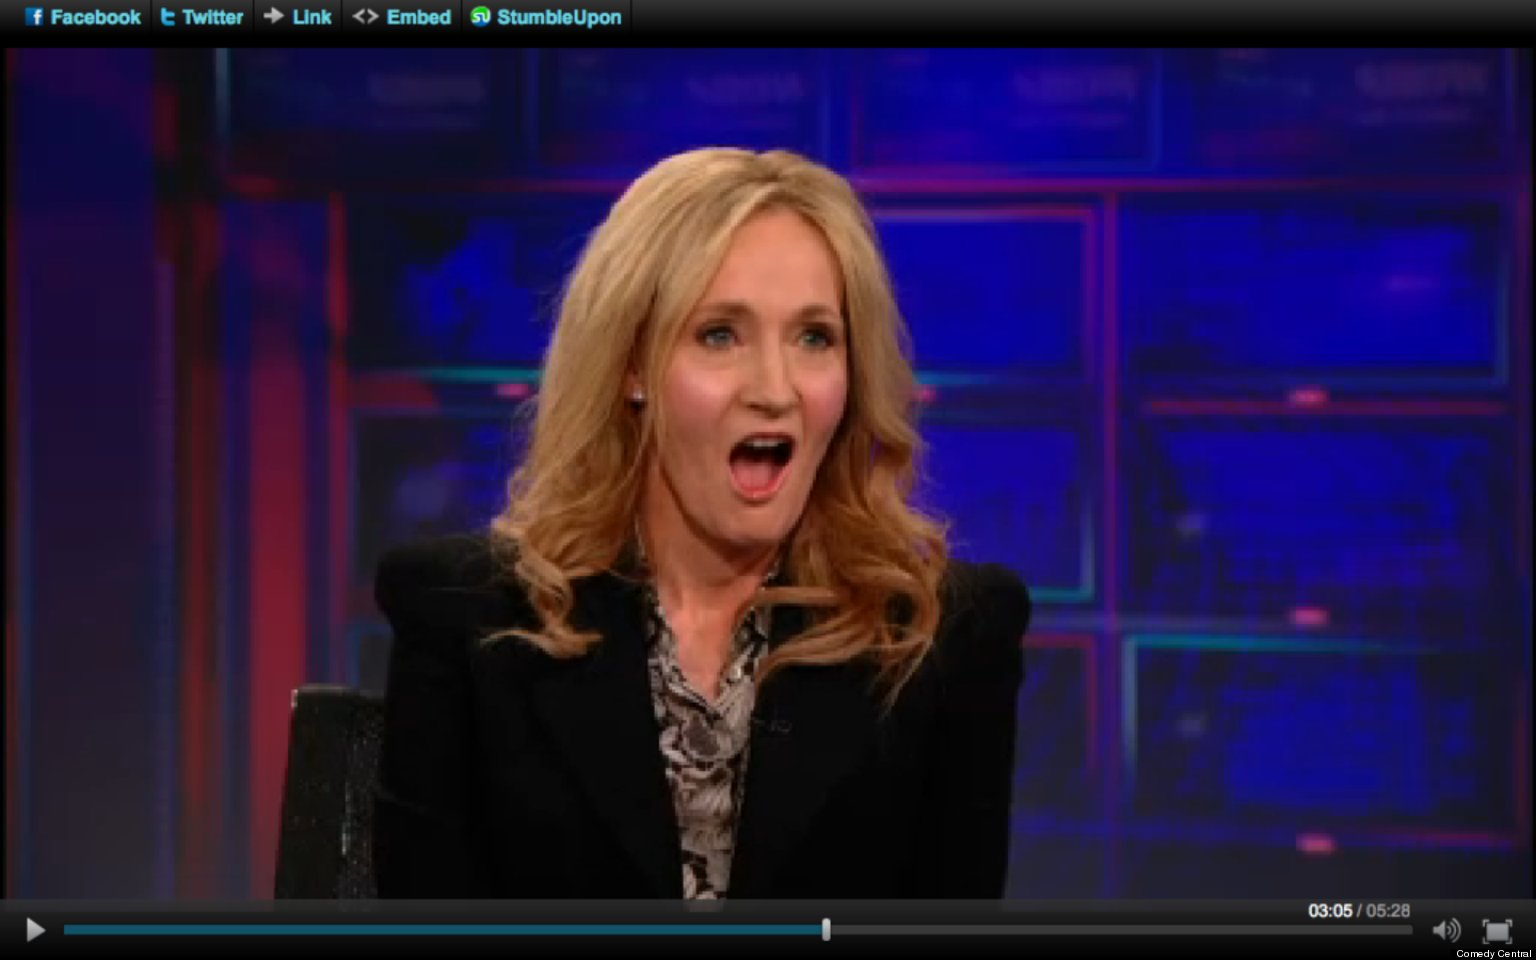 jk rowling on the daily show expresses shock at american jk rowling on the daily show expresses shock at american politics video the huffington post